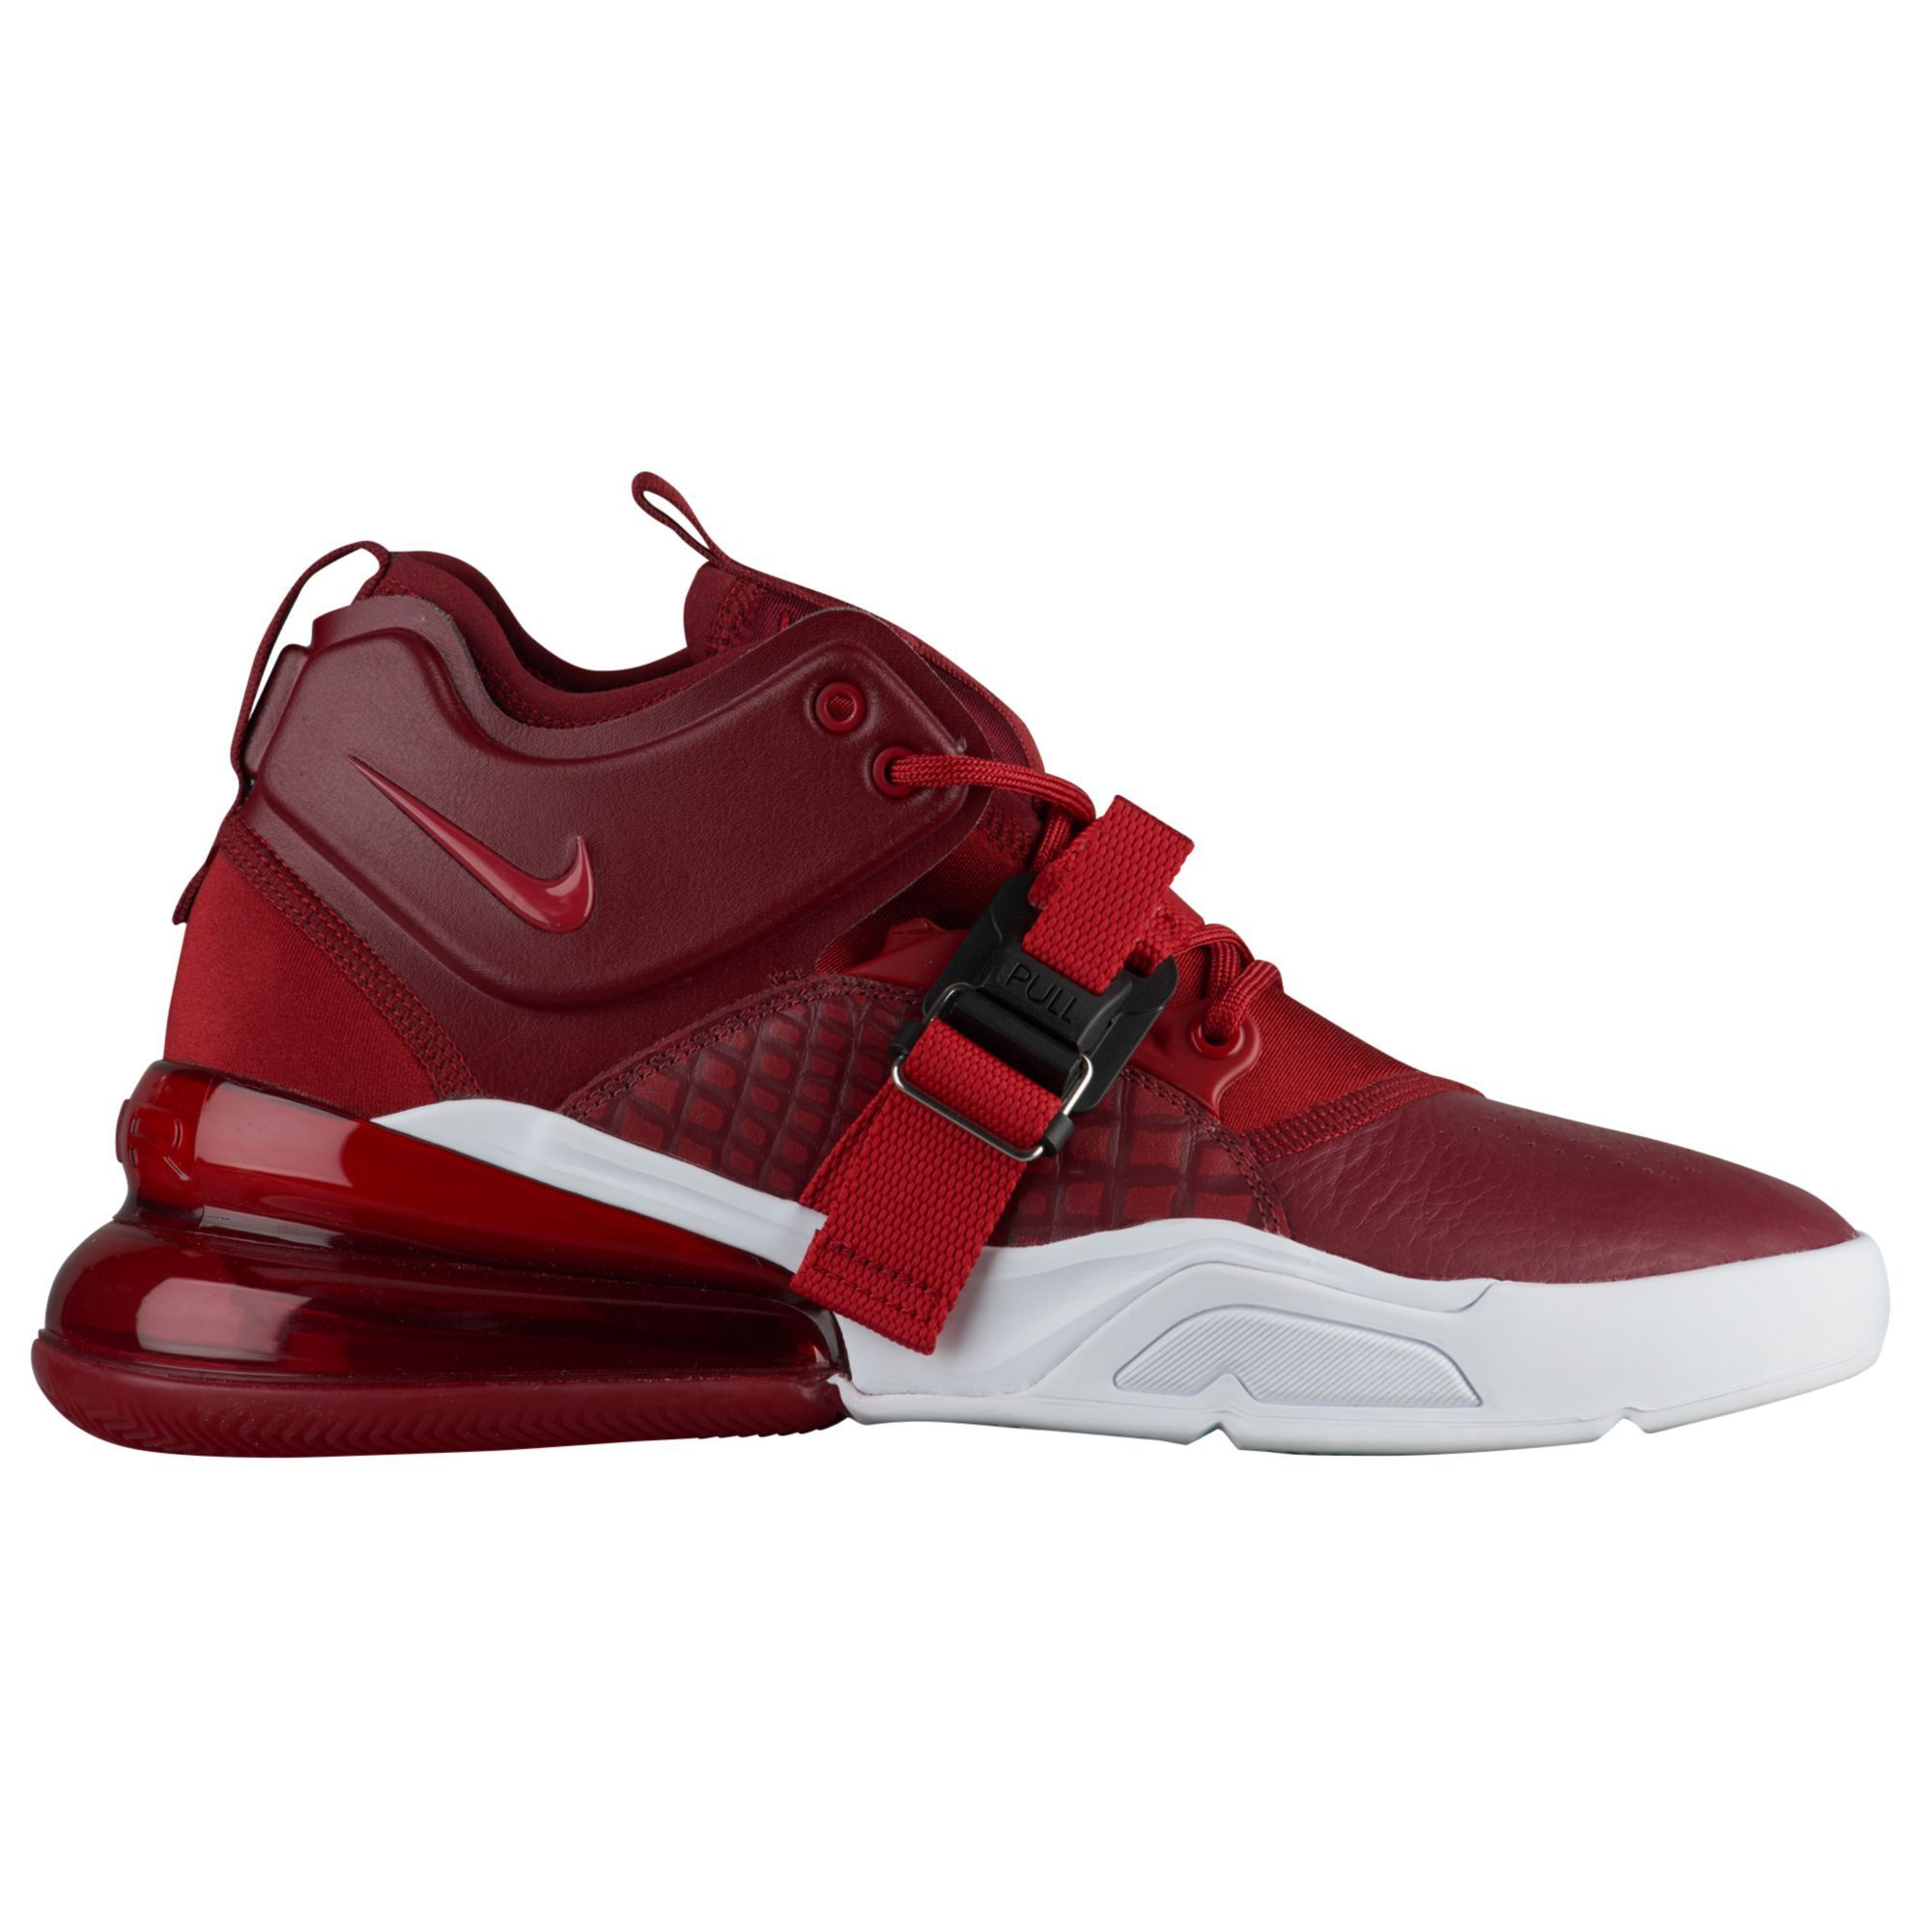 pair of bright red Air Force 270